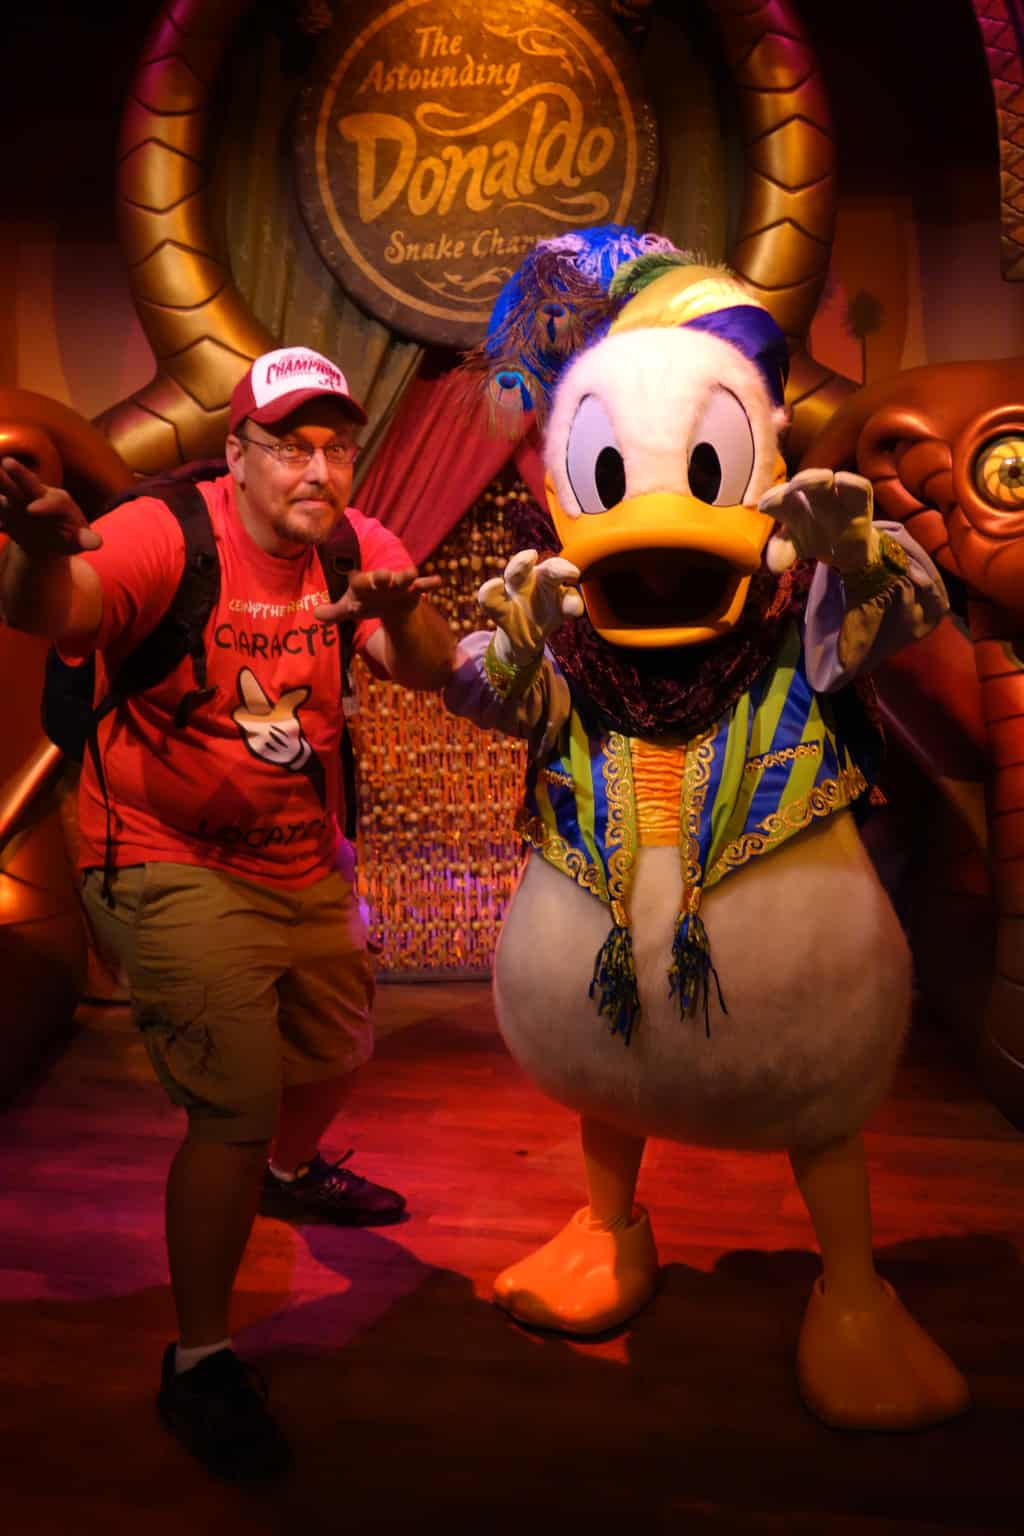 Donald successfully teaches me his charming ability